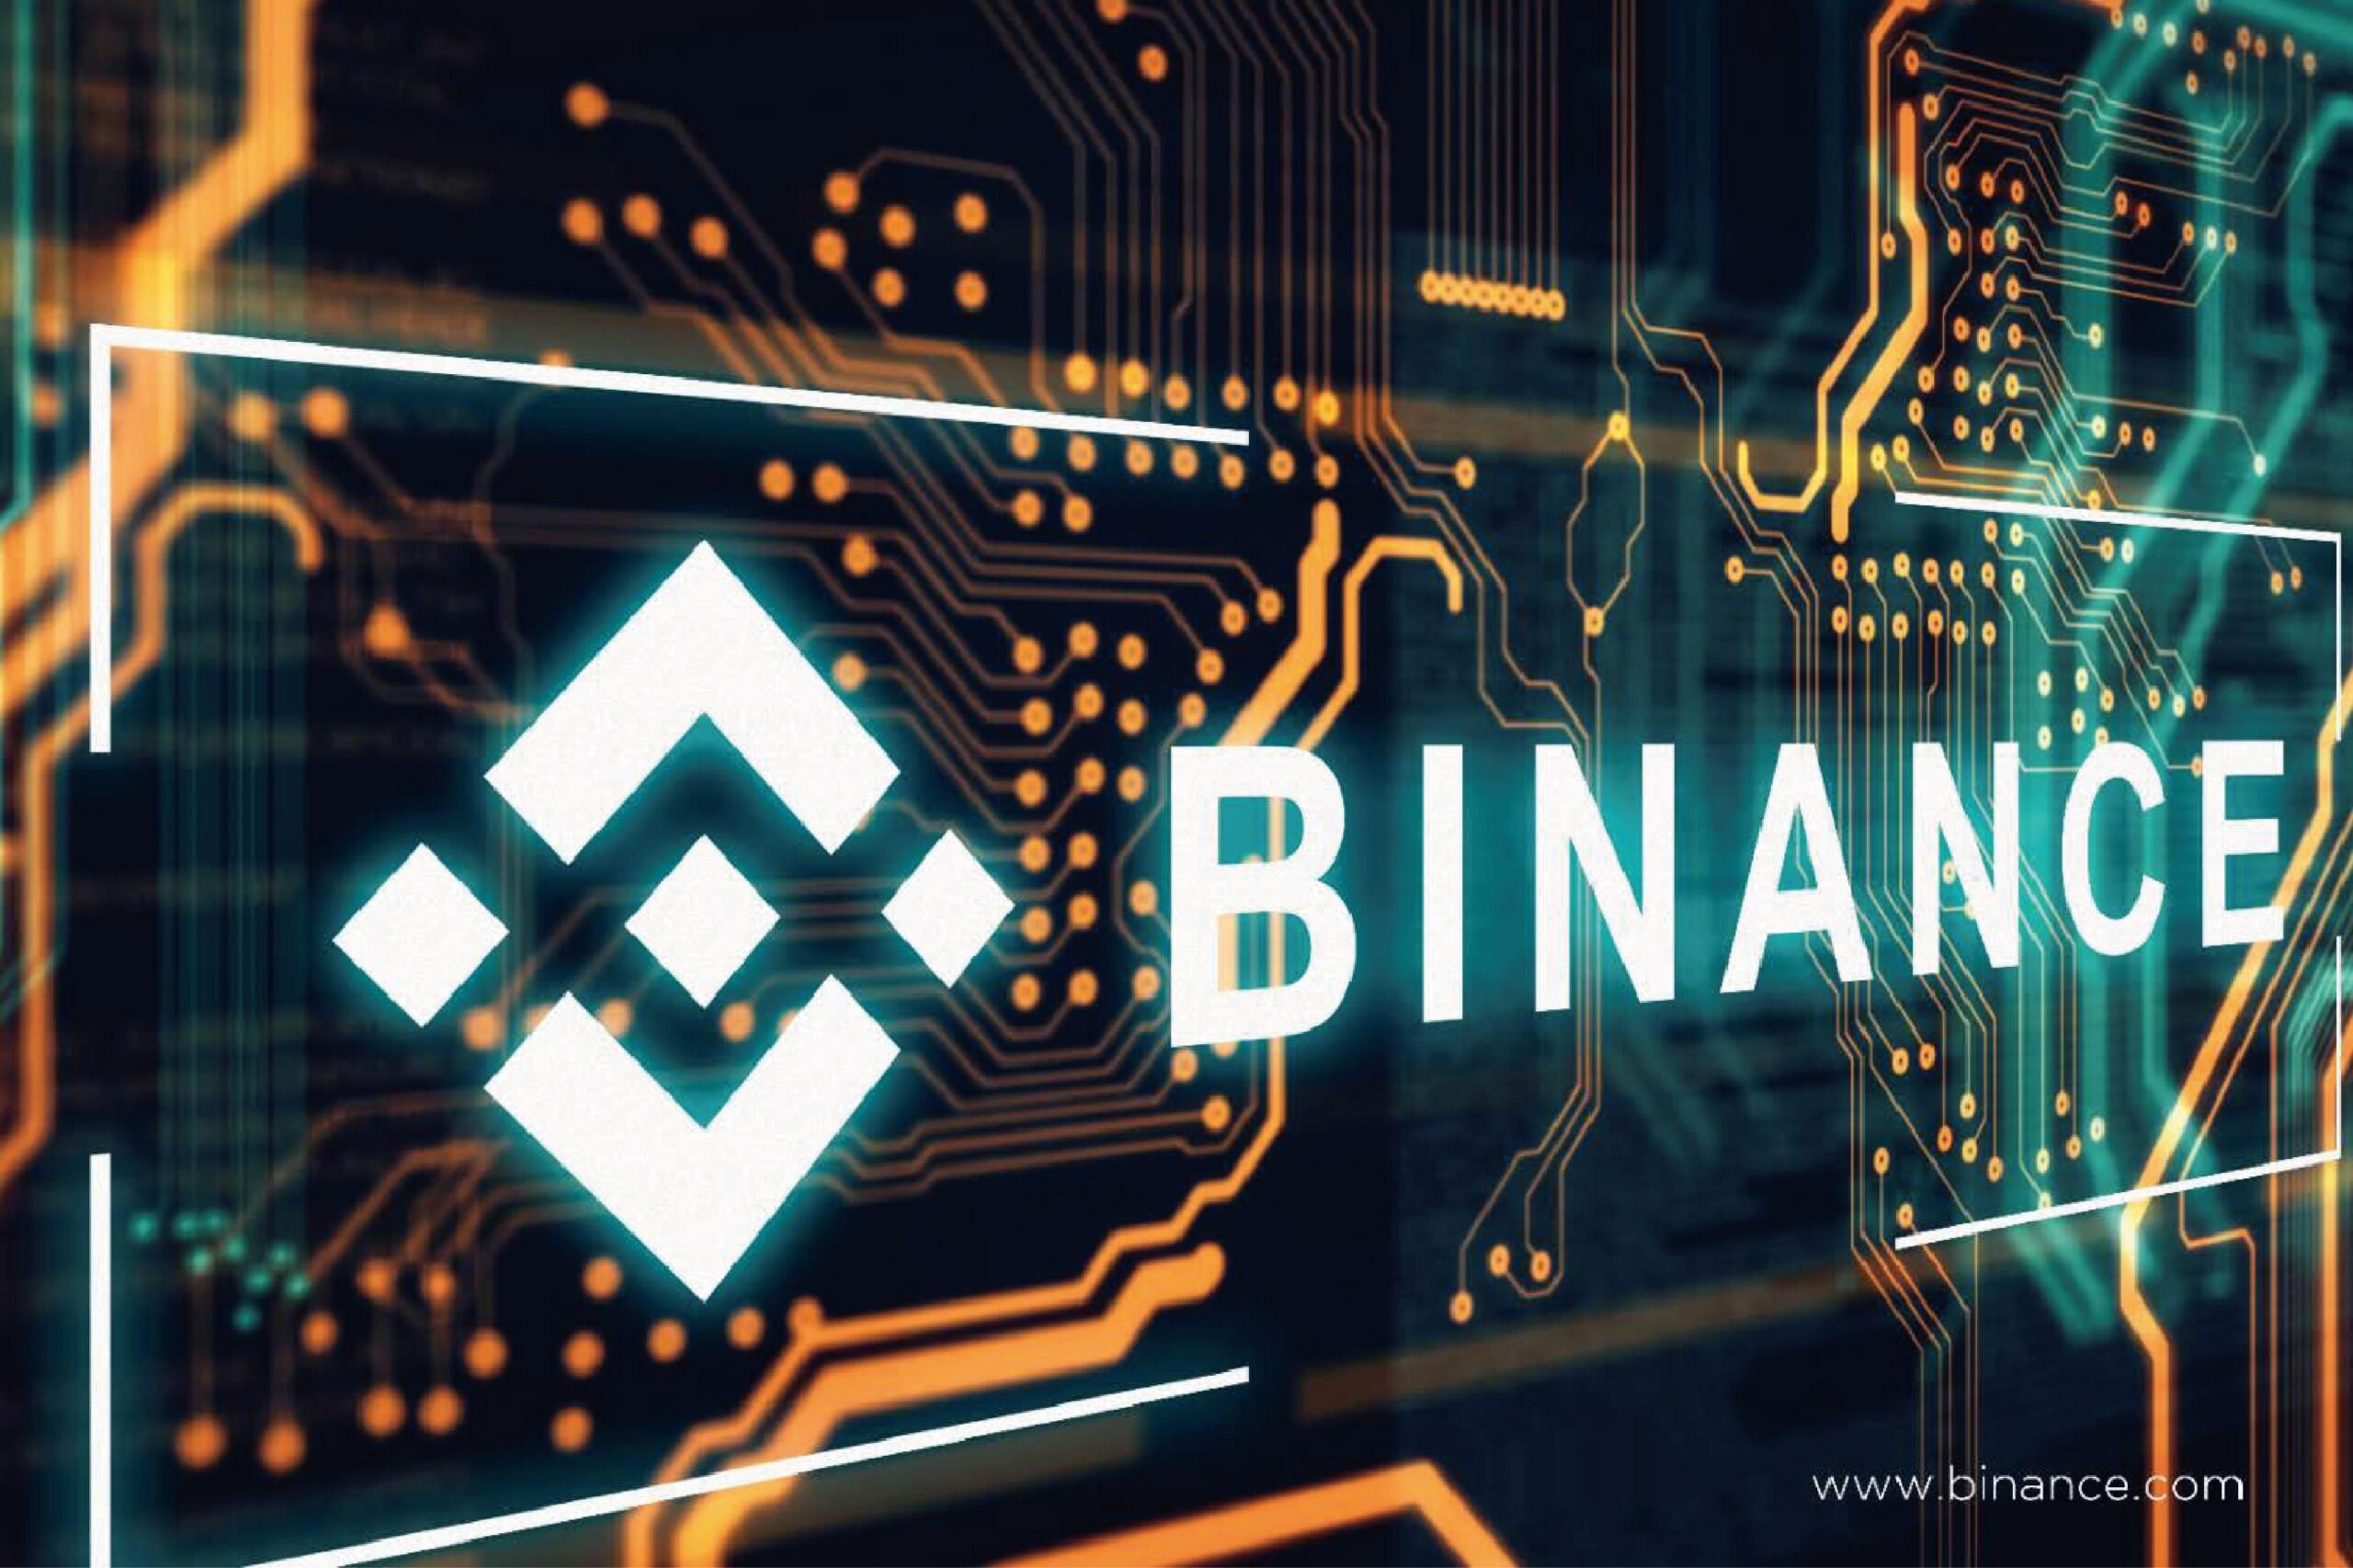 https://www.cryptoworldjournal.com/almost-100-of-binance-ceos-wealth-is-in-cryptocurrencies/#respond